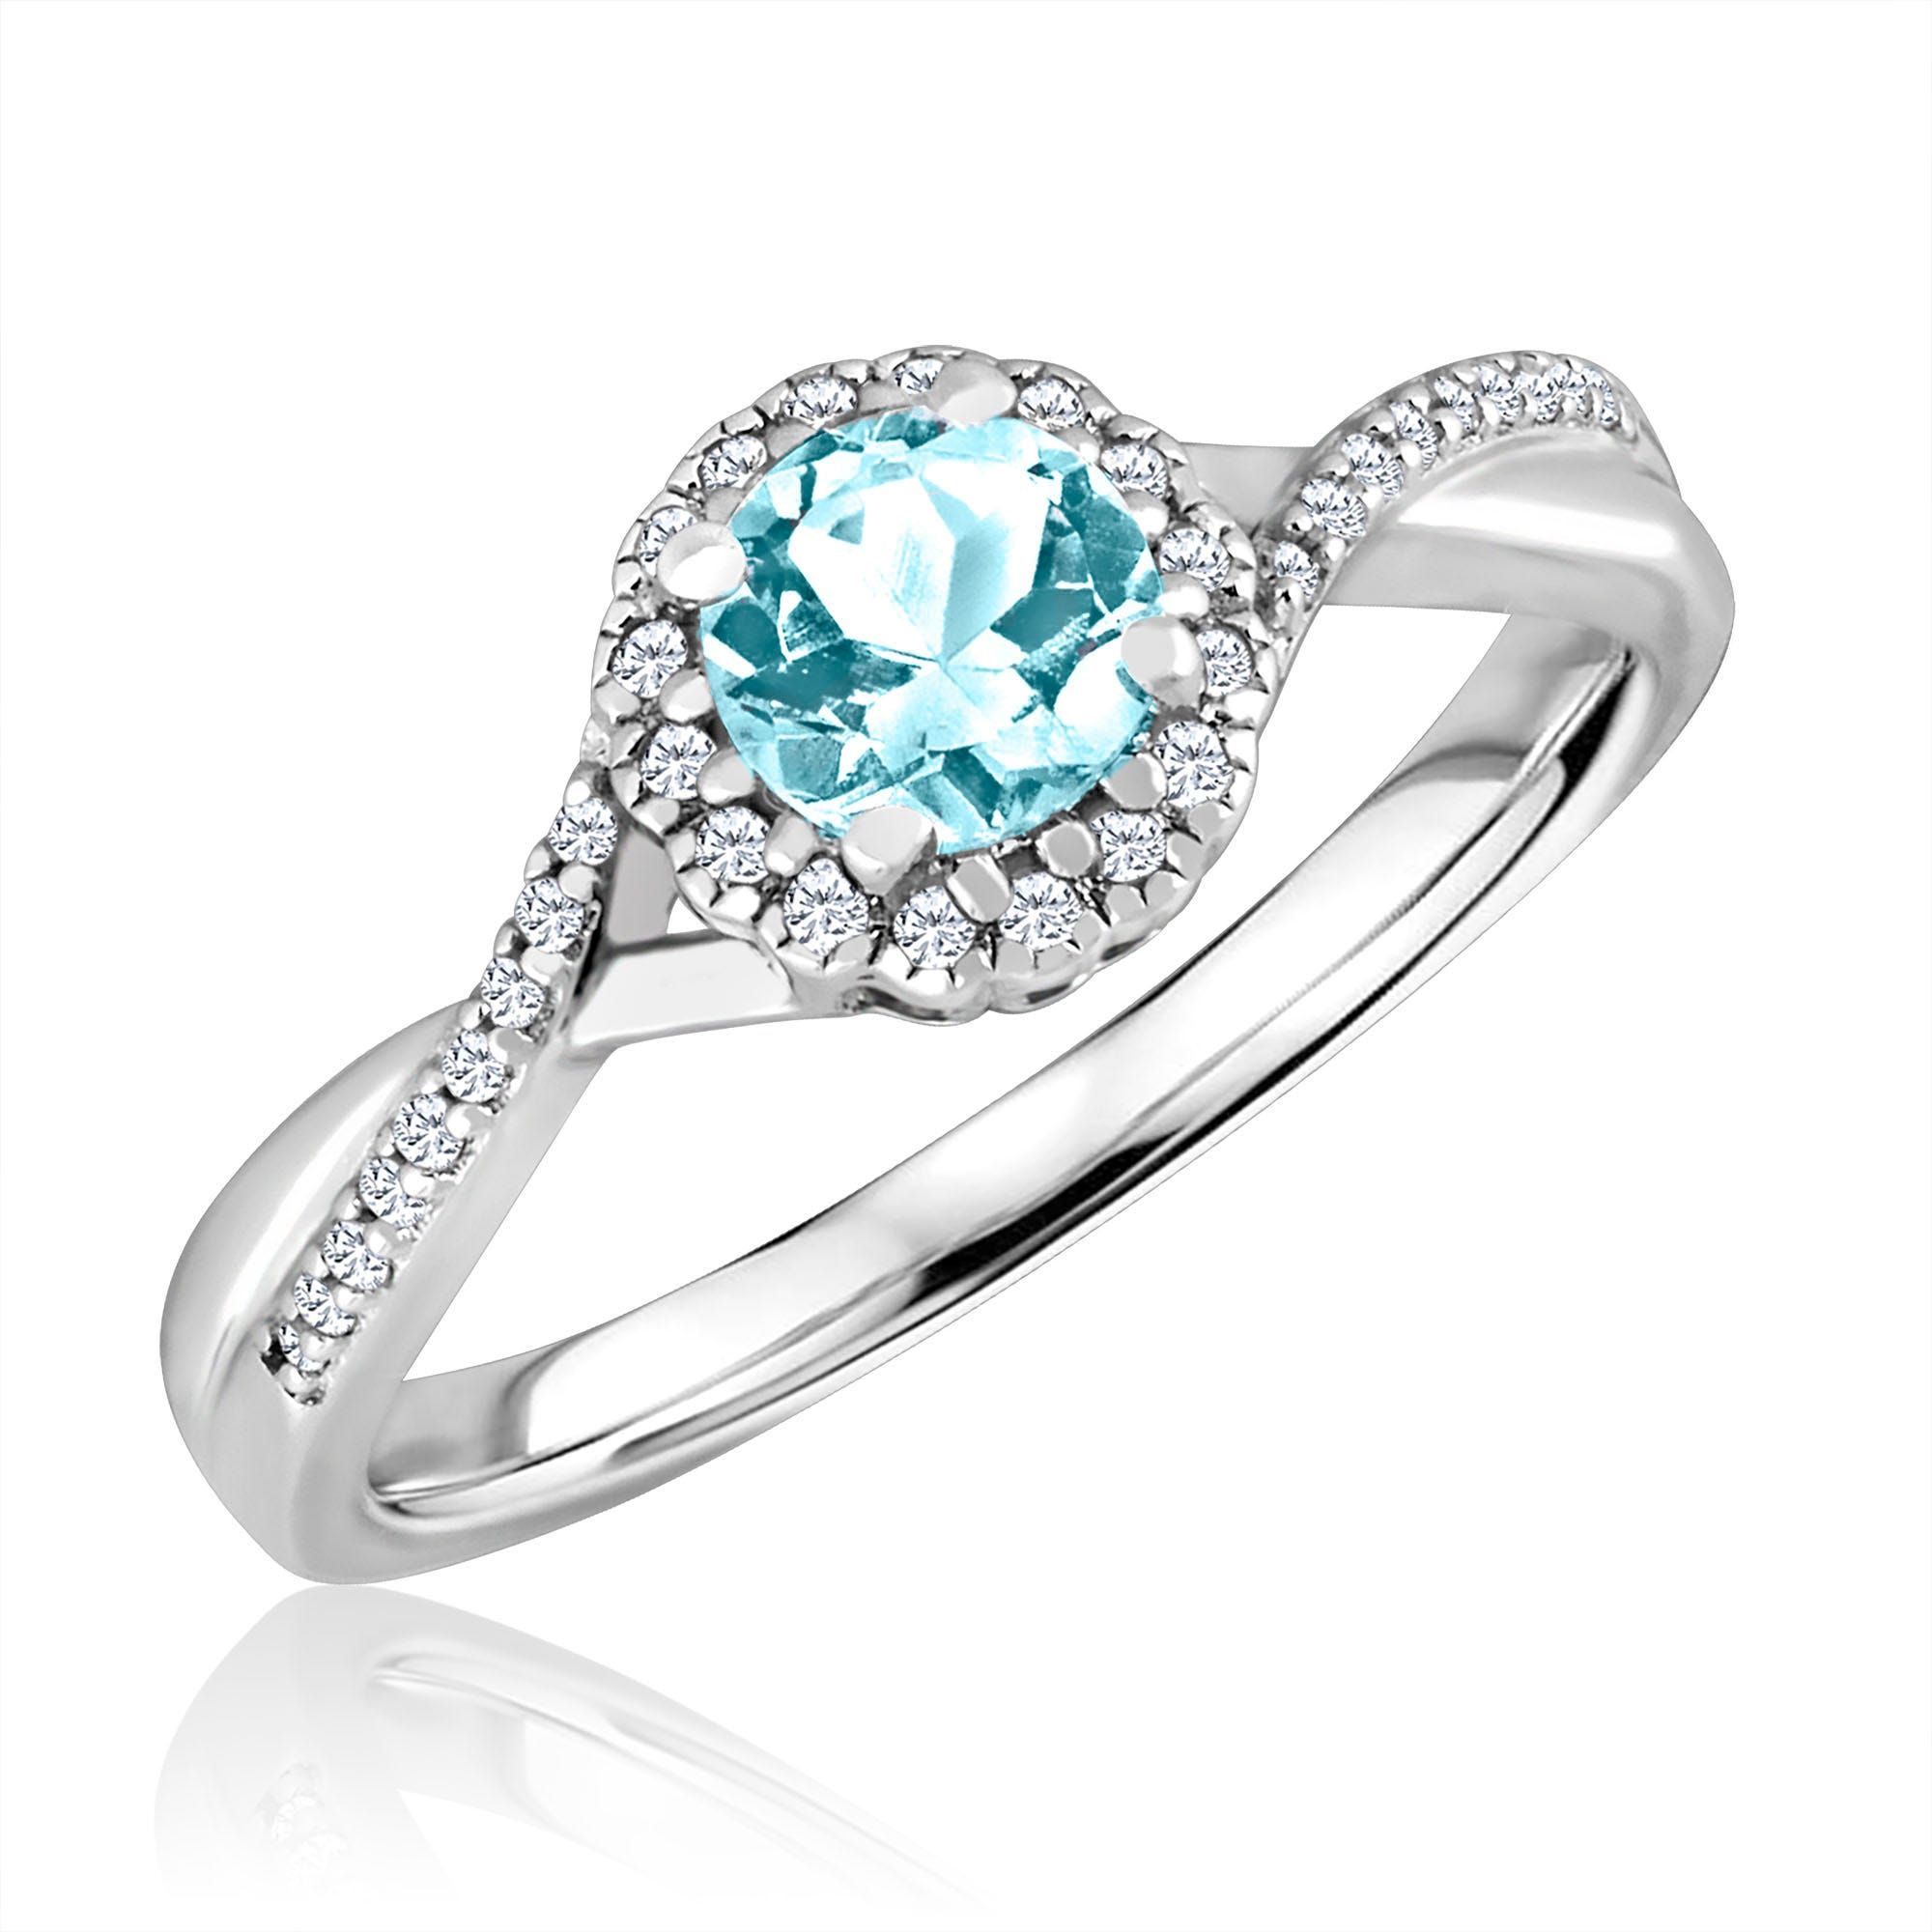 Round-Cut Aquamarine & Diamond Infinity Ring in Sterling Silver